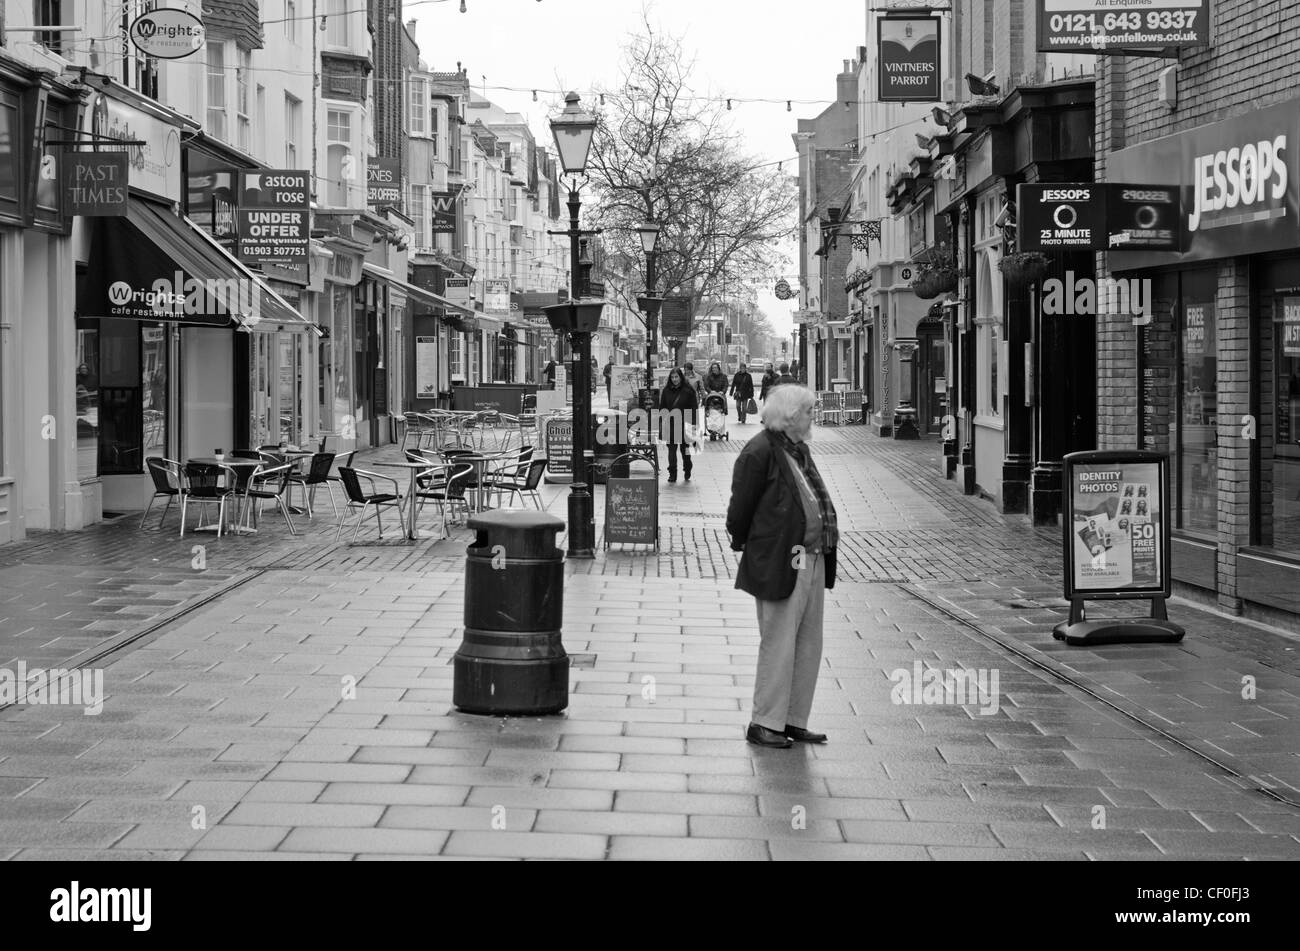 Shopping Precinct with old style buildings in England, UK, in black and white. - Stock Image